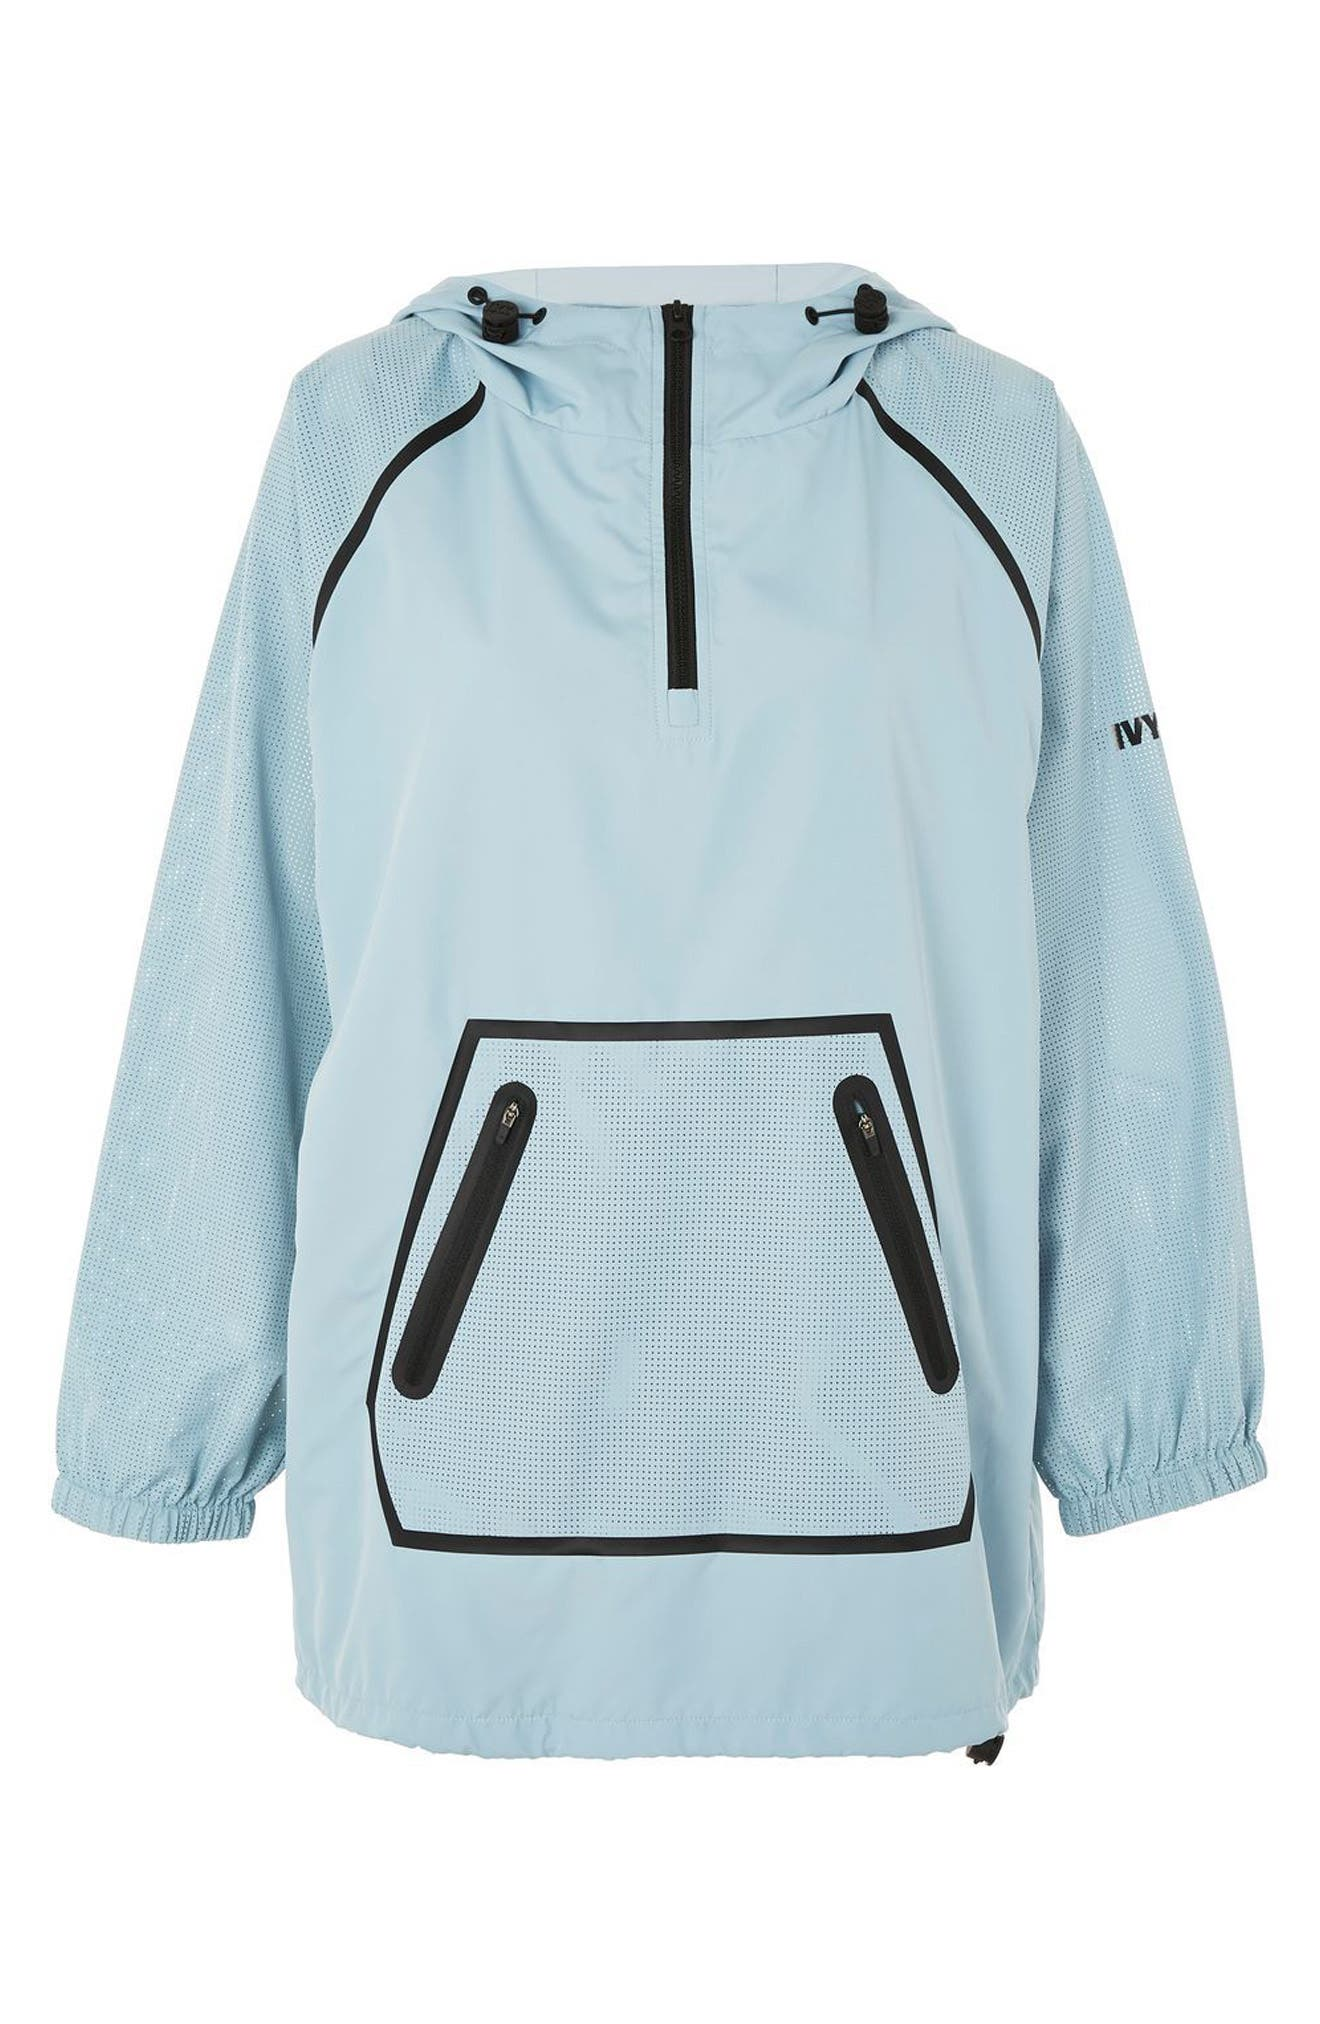 Perforated Pullover Jacket,                             Alternate thumbnail 4, color,                             Porcelain Blue